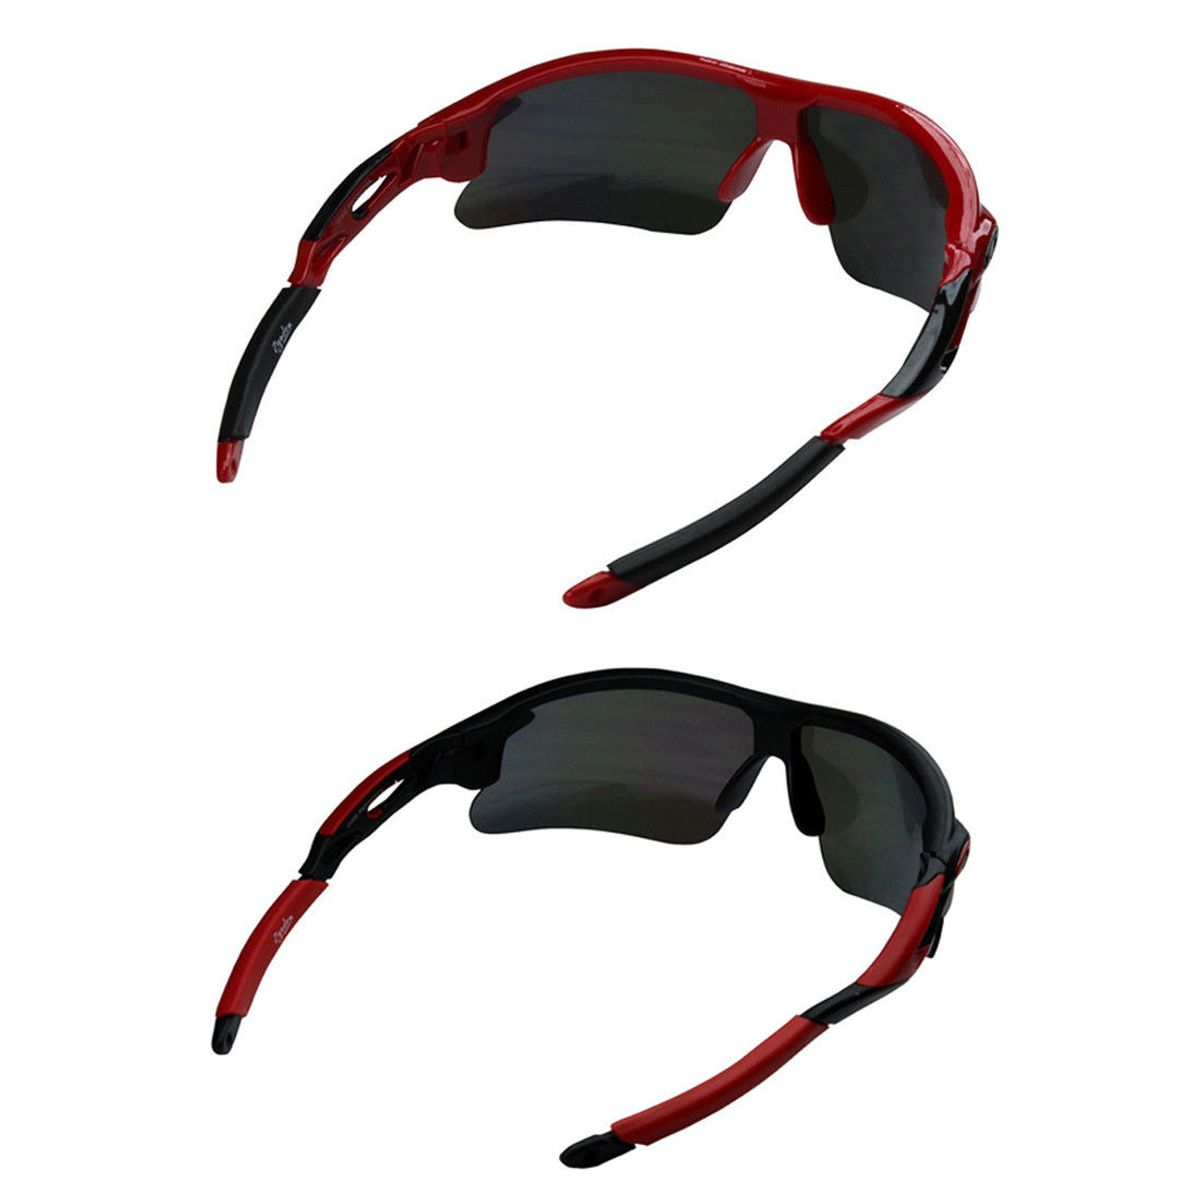 Combo Of 2 Sports Sunglasses For Men And Women